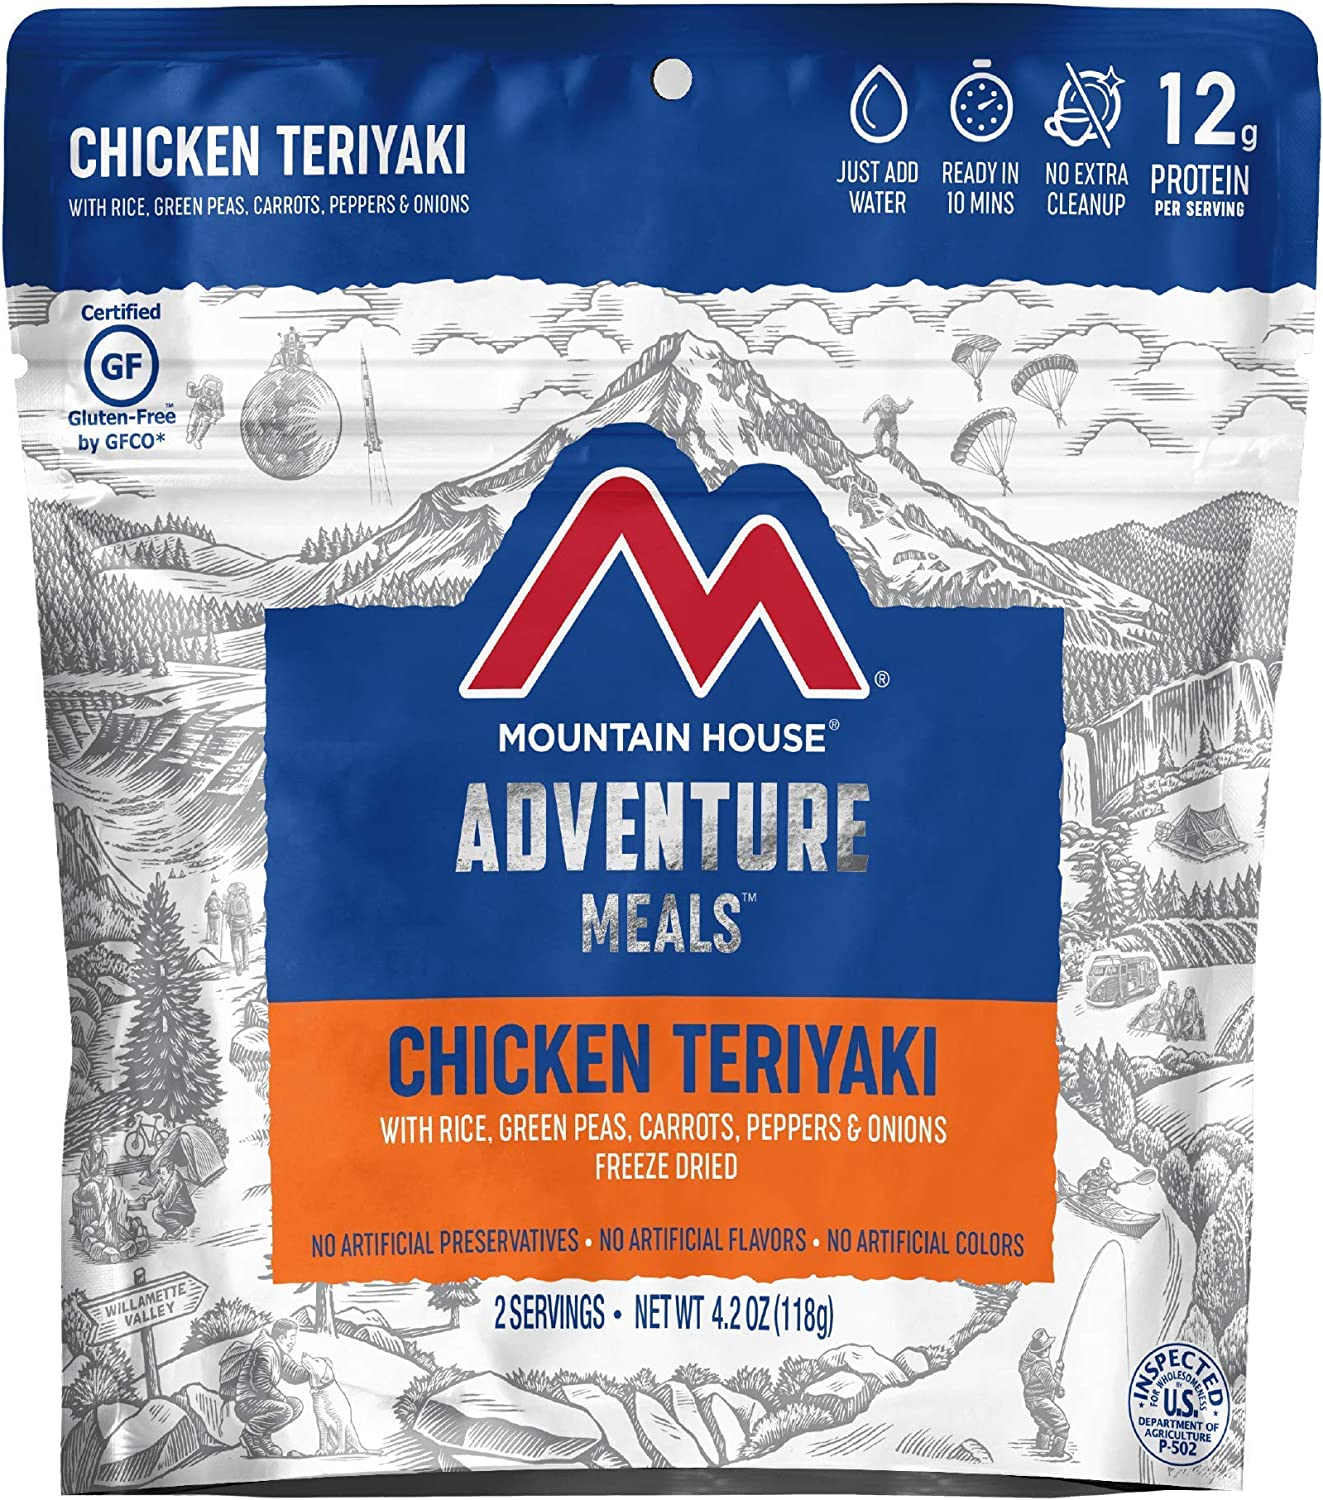 Chicken Teriyaki with Rice | Freeze Dried Backpacking & Camping Food | Gluten-Free (New Version)